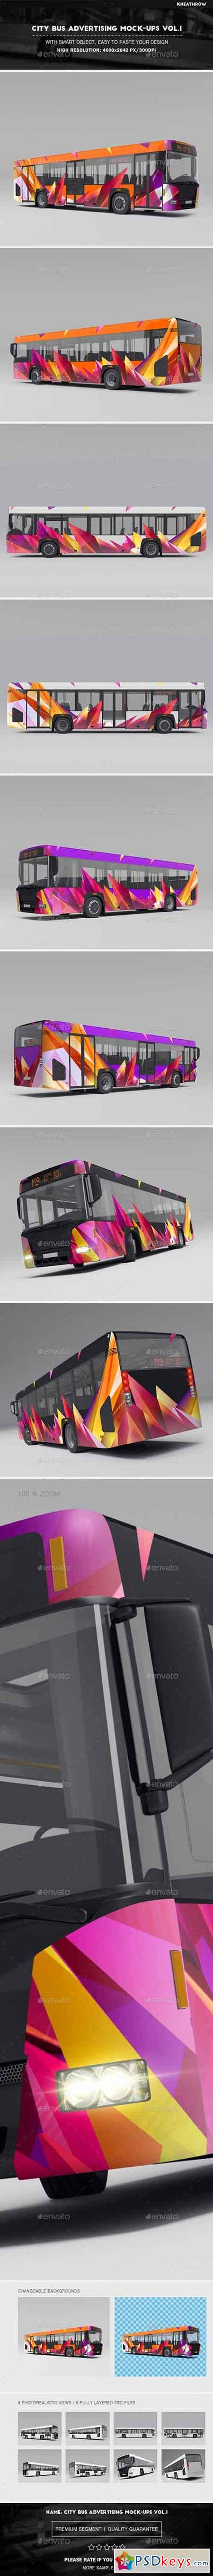 City Bus Advertising Mock-Ups Vol.1 20730427